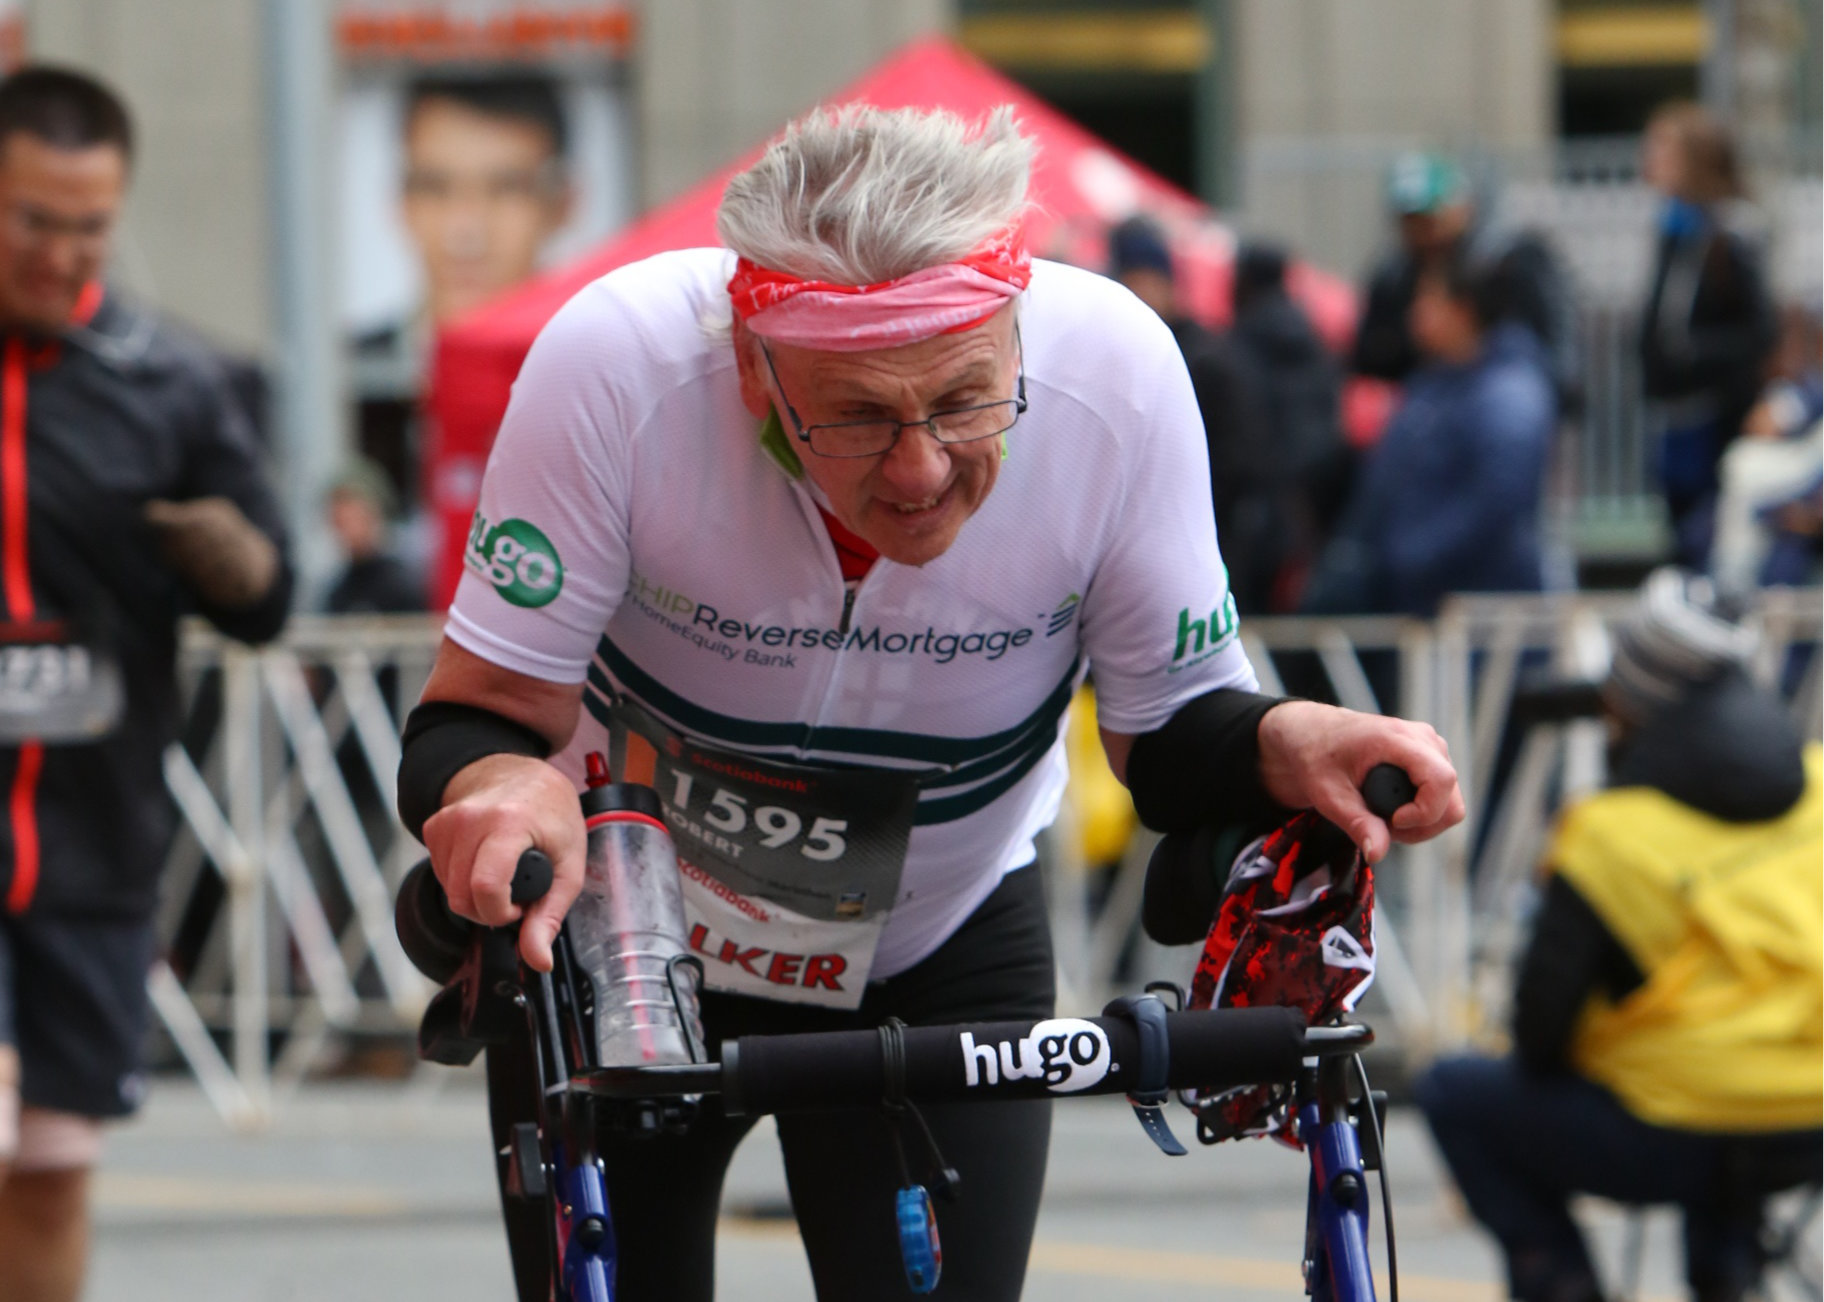 A photo of Robert Bob Hardy The Walker Runner, speed walking at the Toronto Marathon in October 2018 with his walker. Photo by Toronto Marathon, used on the website bobhardythewalkerrunner.com, designed and hosted by Evolvingmedia.com